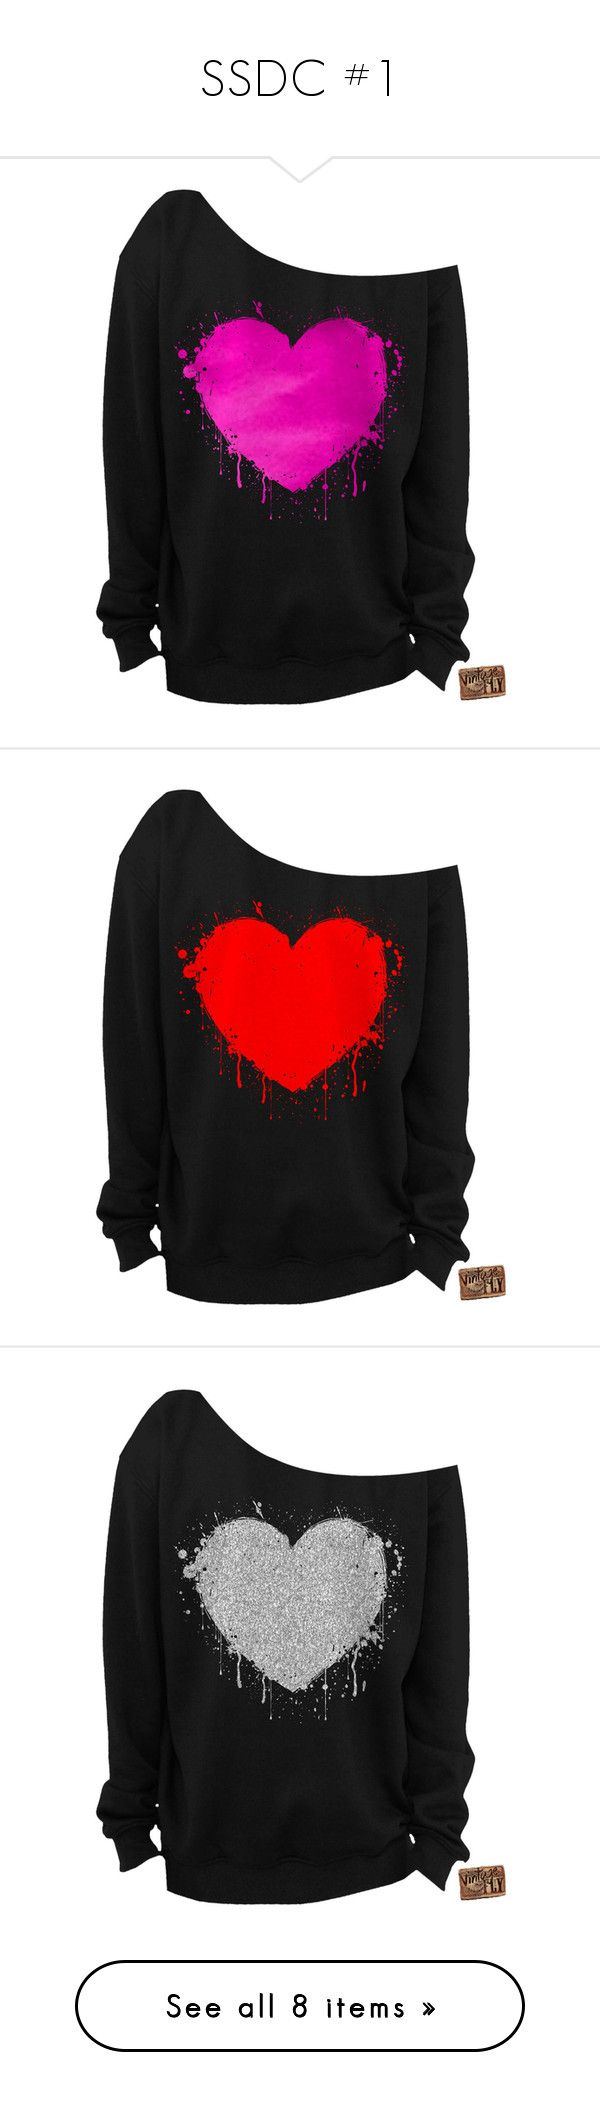 """SSDC #1"" by dark-emo-kitty ❤ liked on Polyvore featuring tops, hoodies, sweatshirts, shirts, sweaters, white, women's clothing, loose shirt, heart shirt and heart sweatshirt"